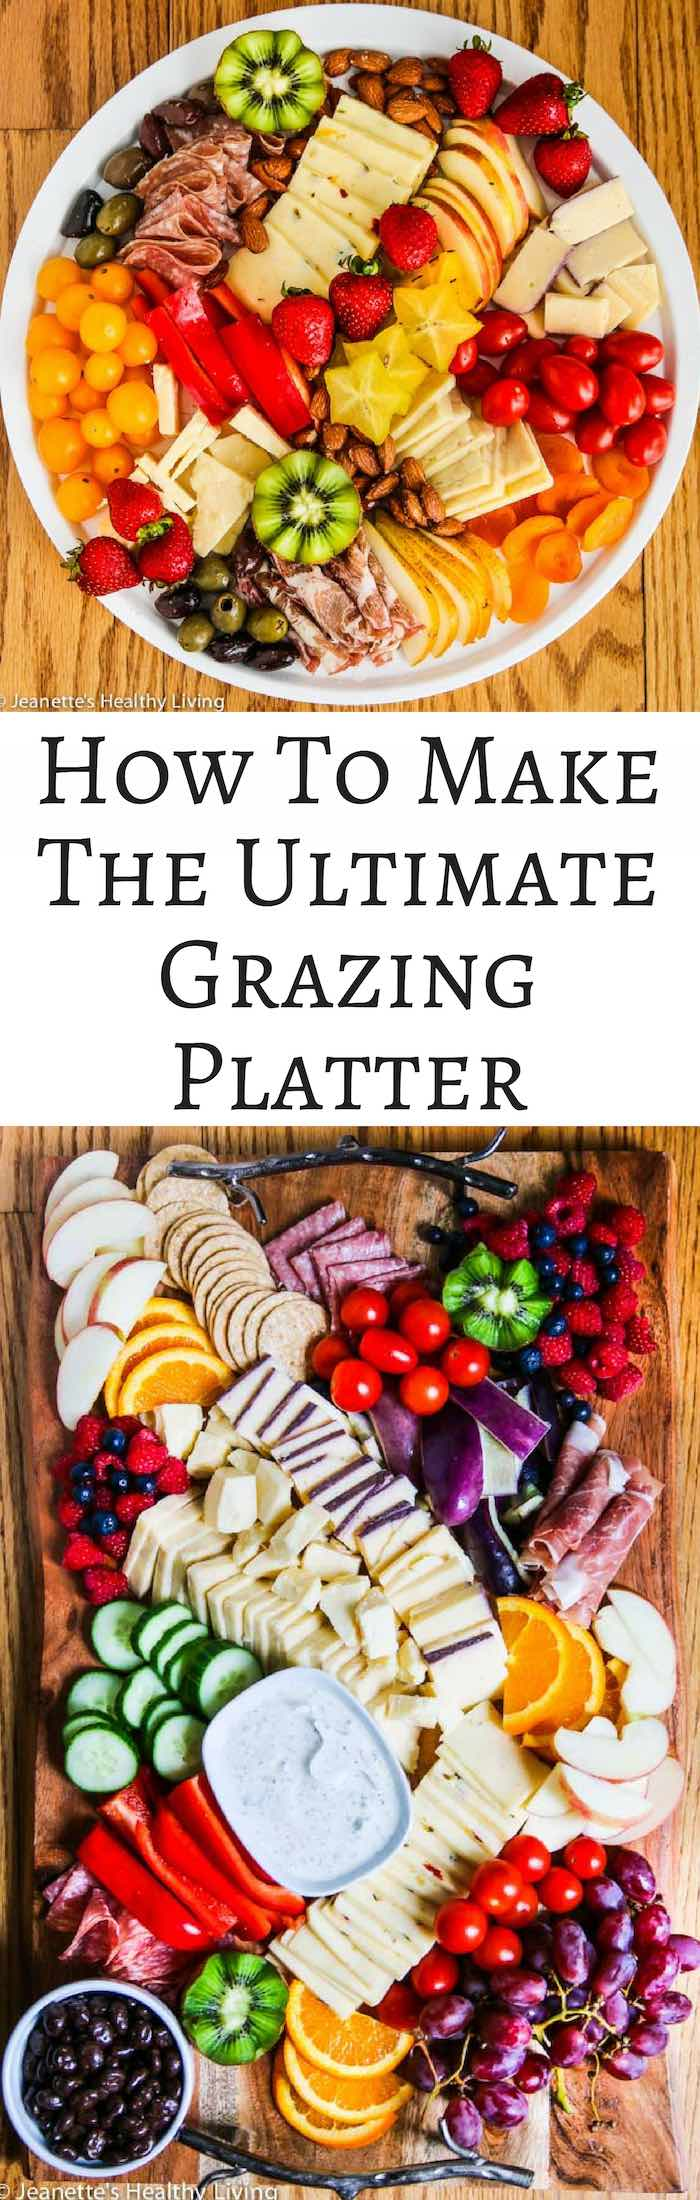 Ultimate Grazing Platter - learn how to make a beautiful grazing platter your guests will love